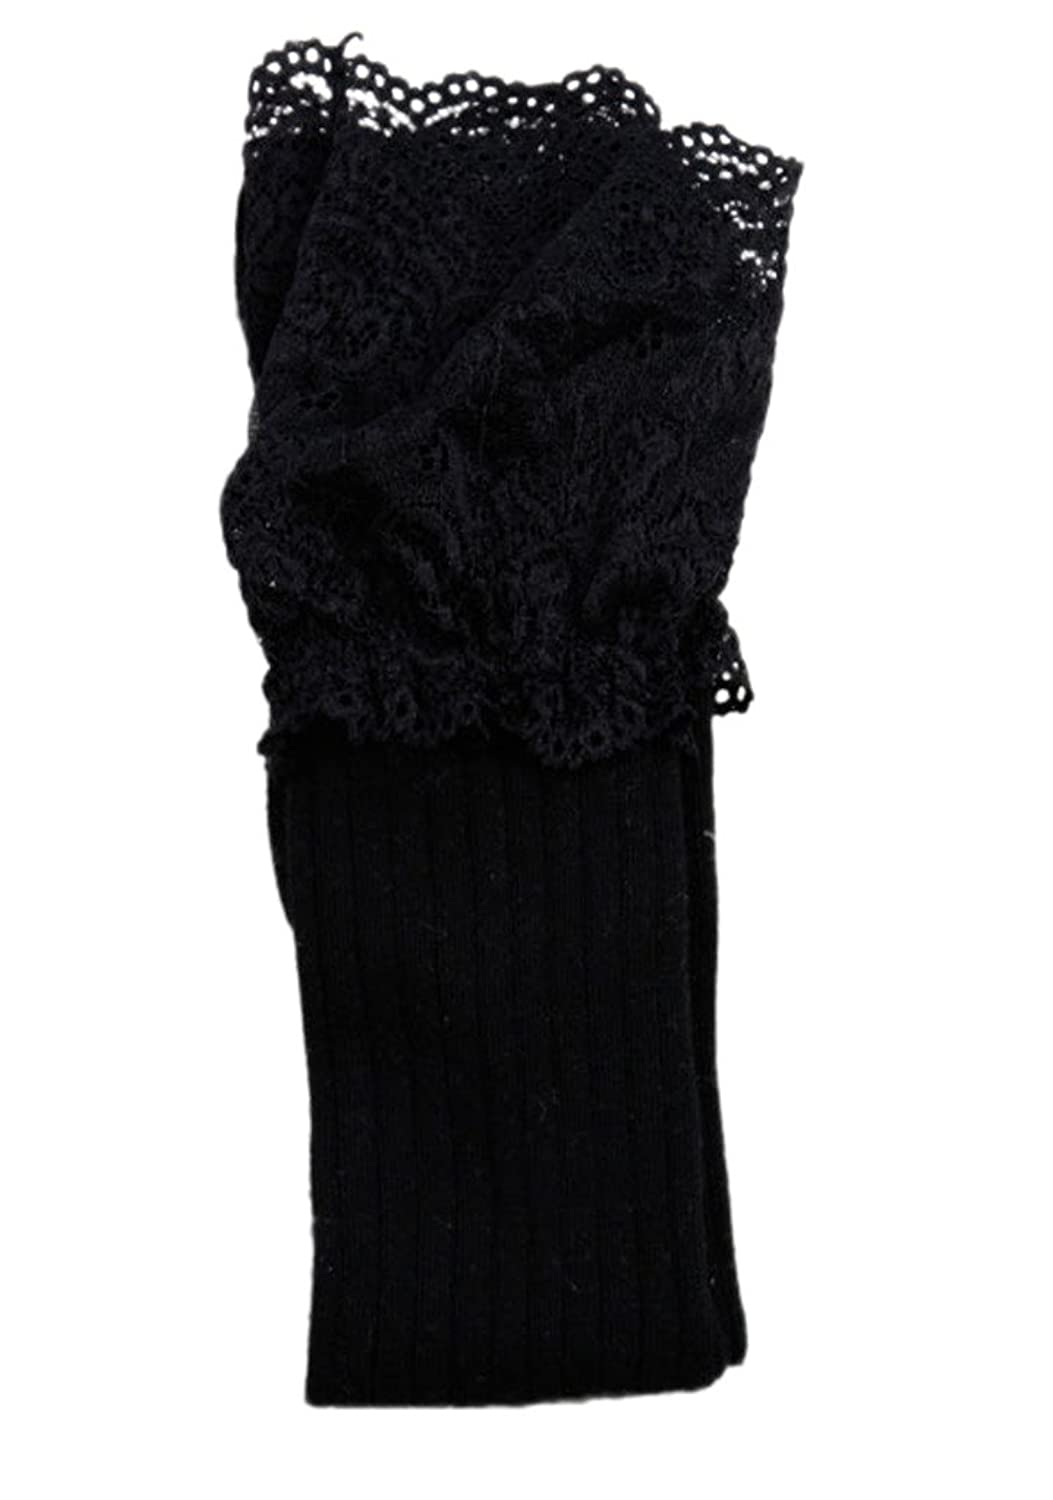 Toyobuy Women Lace Over the Knee Thigh High Tube Socks Boots Stockings